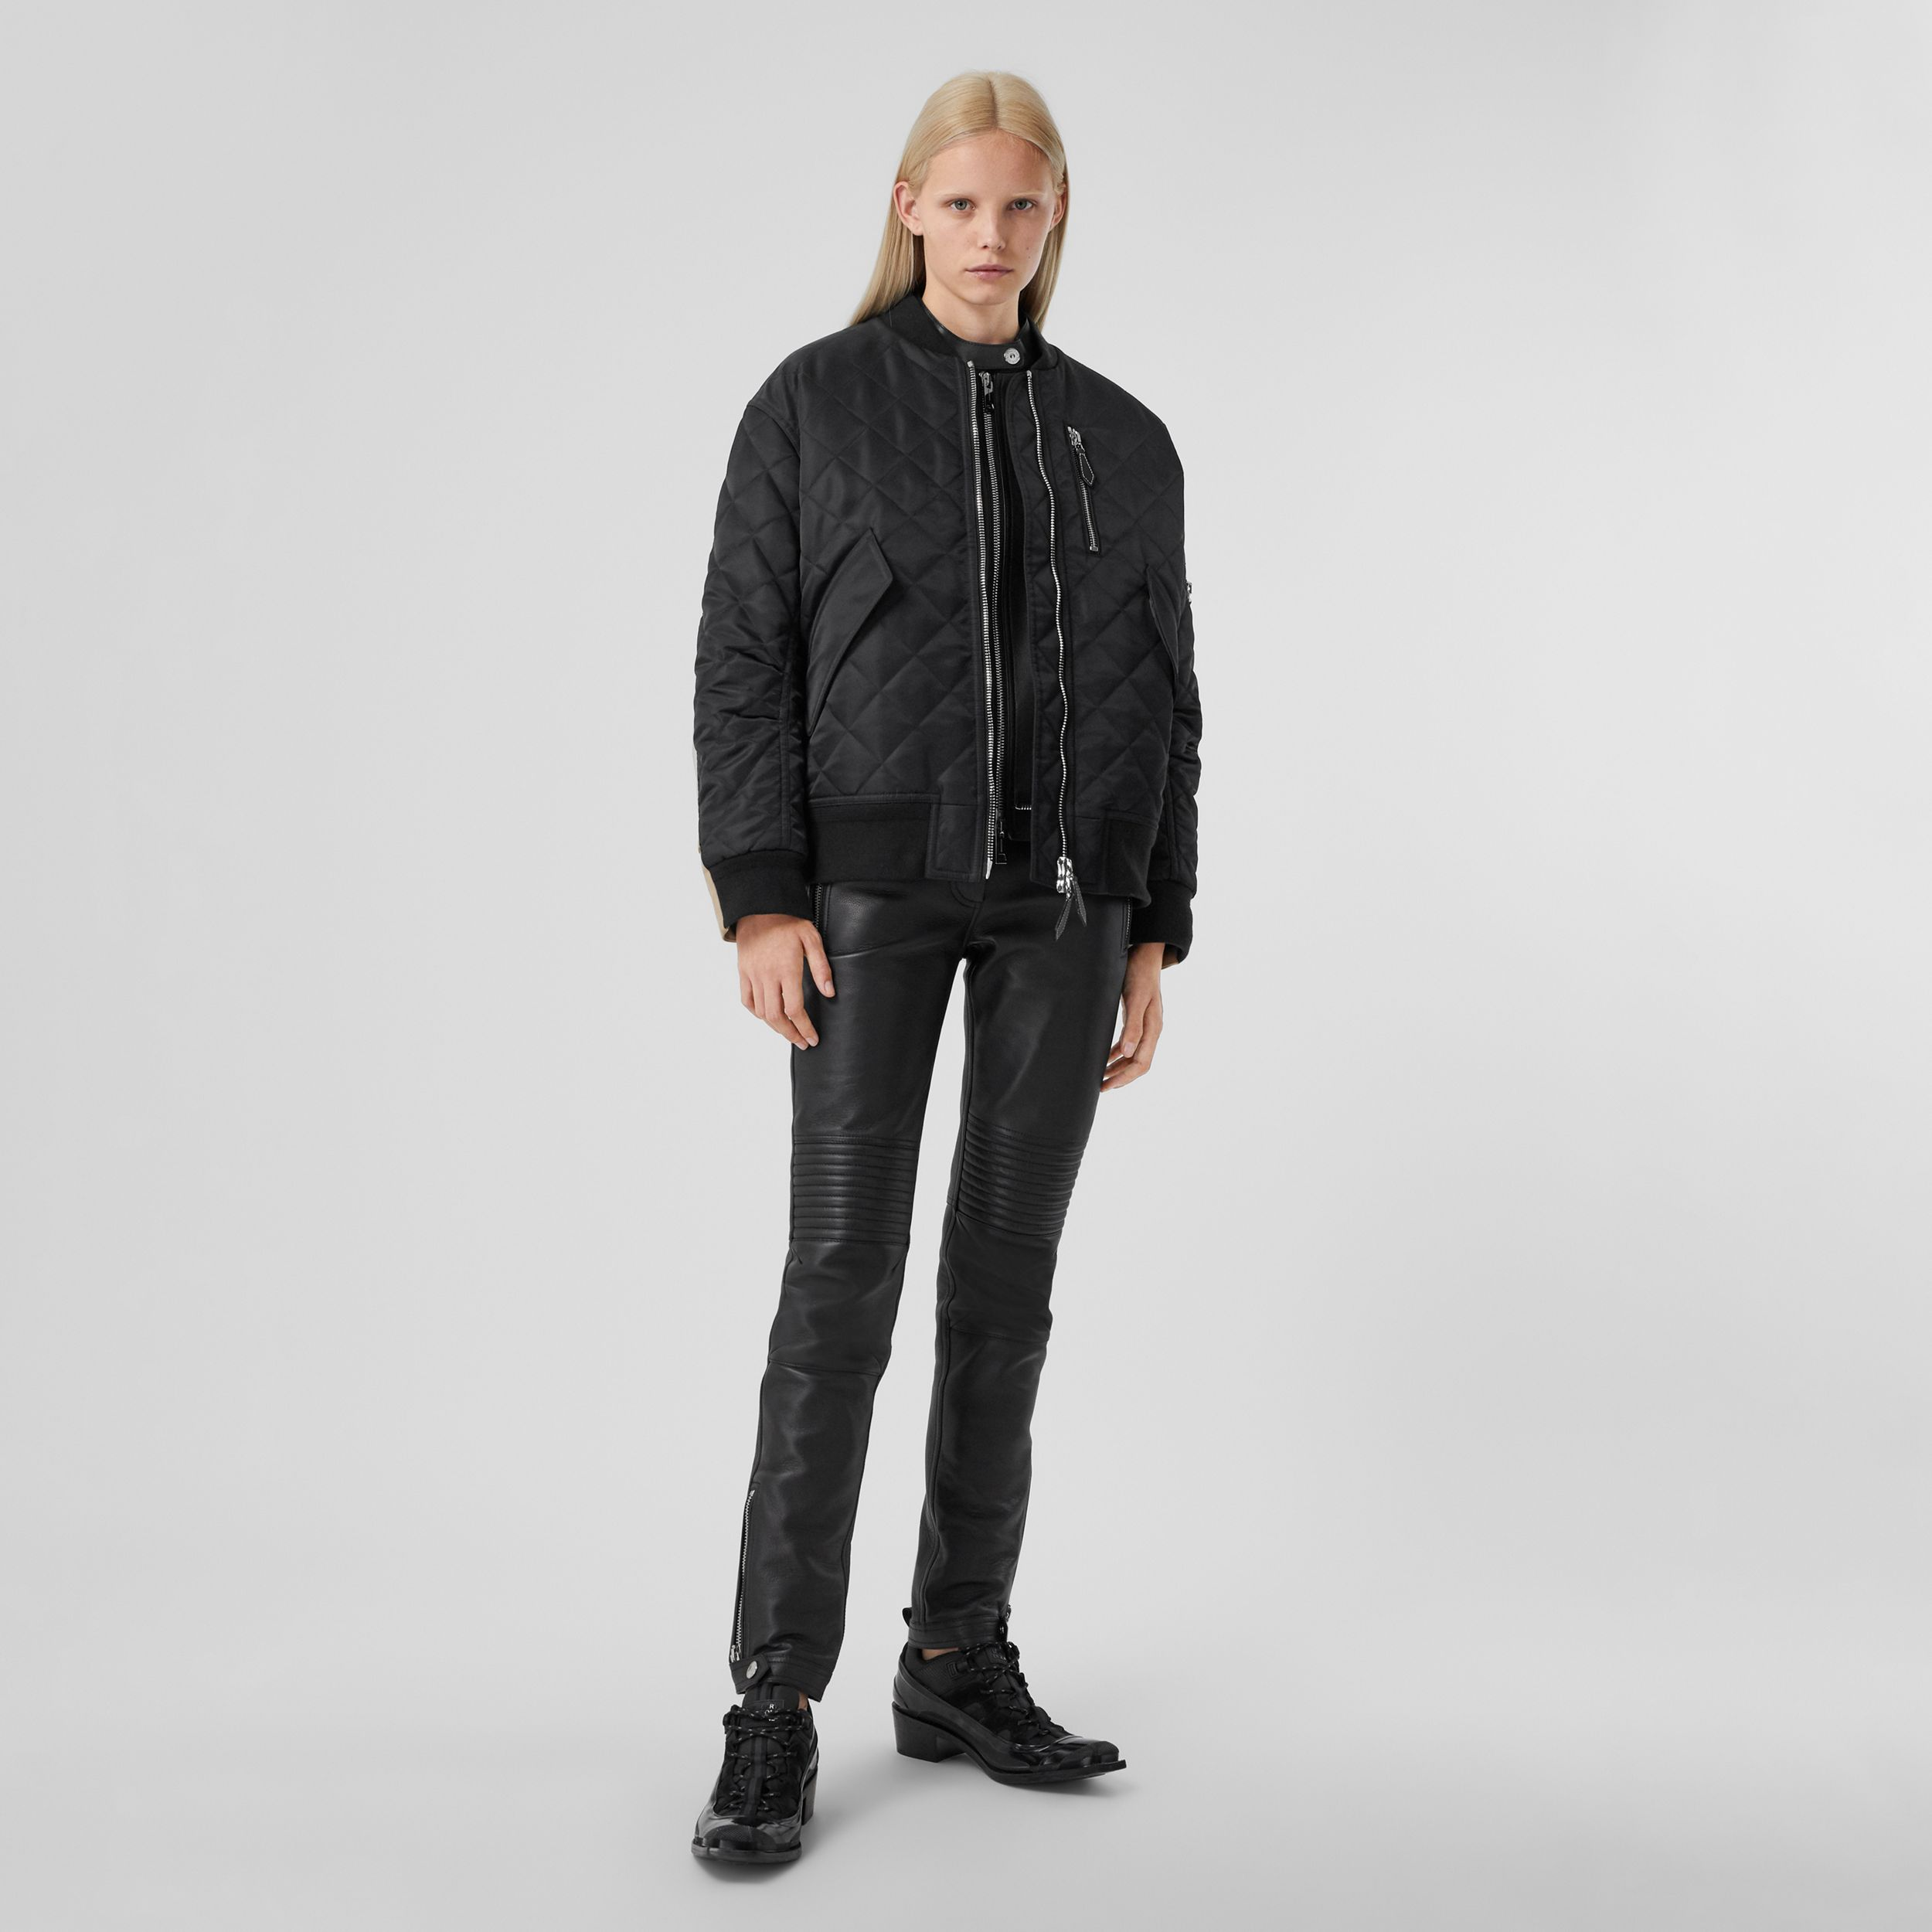 Diamond Quilted Nylon and Cotton Bomber Jacket in Black | Burberry Hong Kong S.A.R. - 1